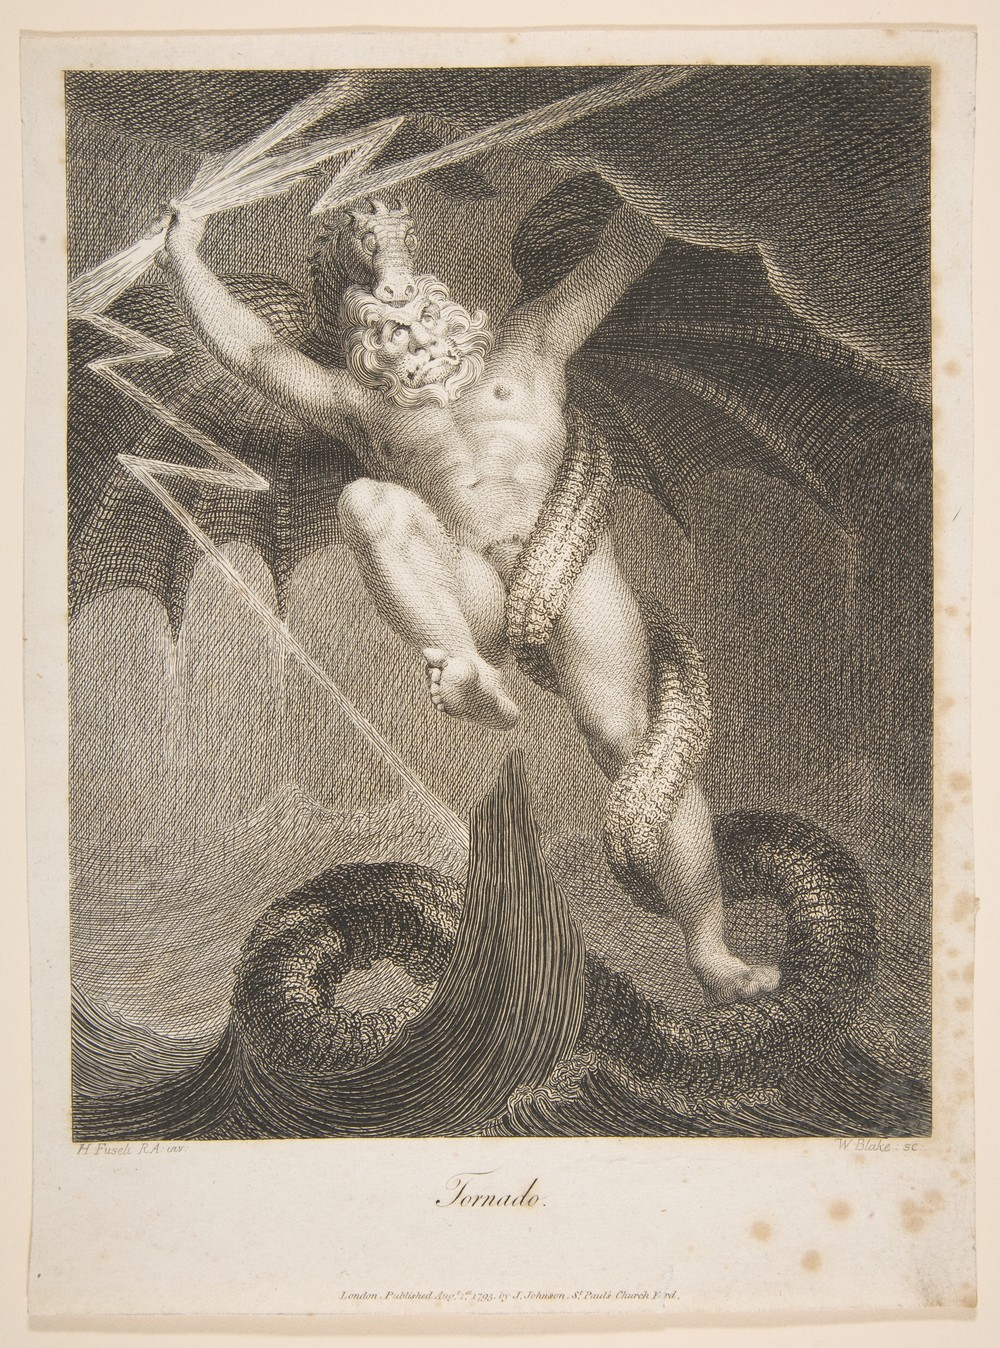 Tornado–Zeus Battling Typhon, by William Blake (1757–1827) after Henry Fuseli (1741–1825), monochrome shaded line drawing from the third edition of Erasmus Darwin's (1731–1802) The Botanic Garden (1795).   source: The Elisha Whittelsey Collection, The Elisha Whittelsey Fund, 1966 via The Metropolitan Museum of Art (New York, United States).